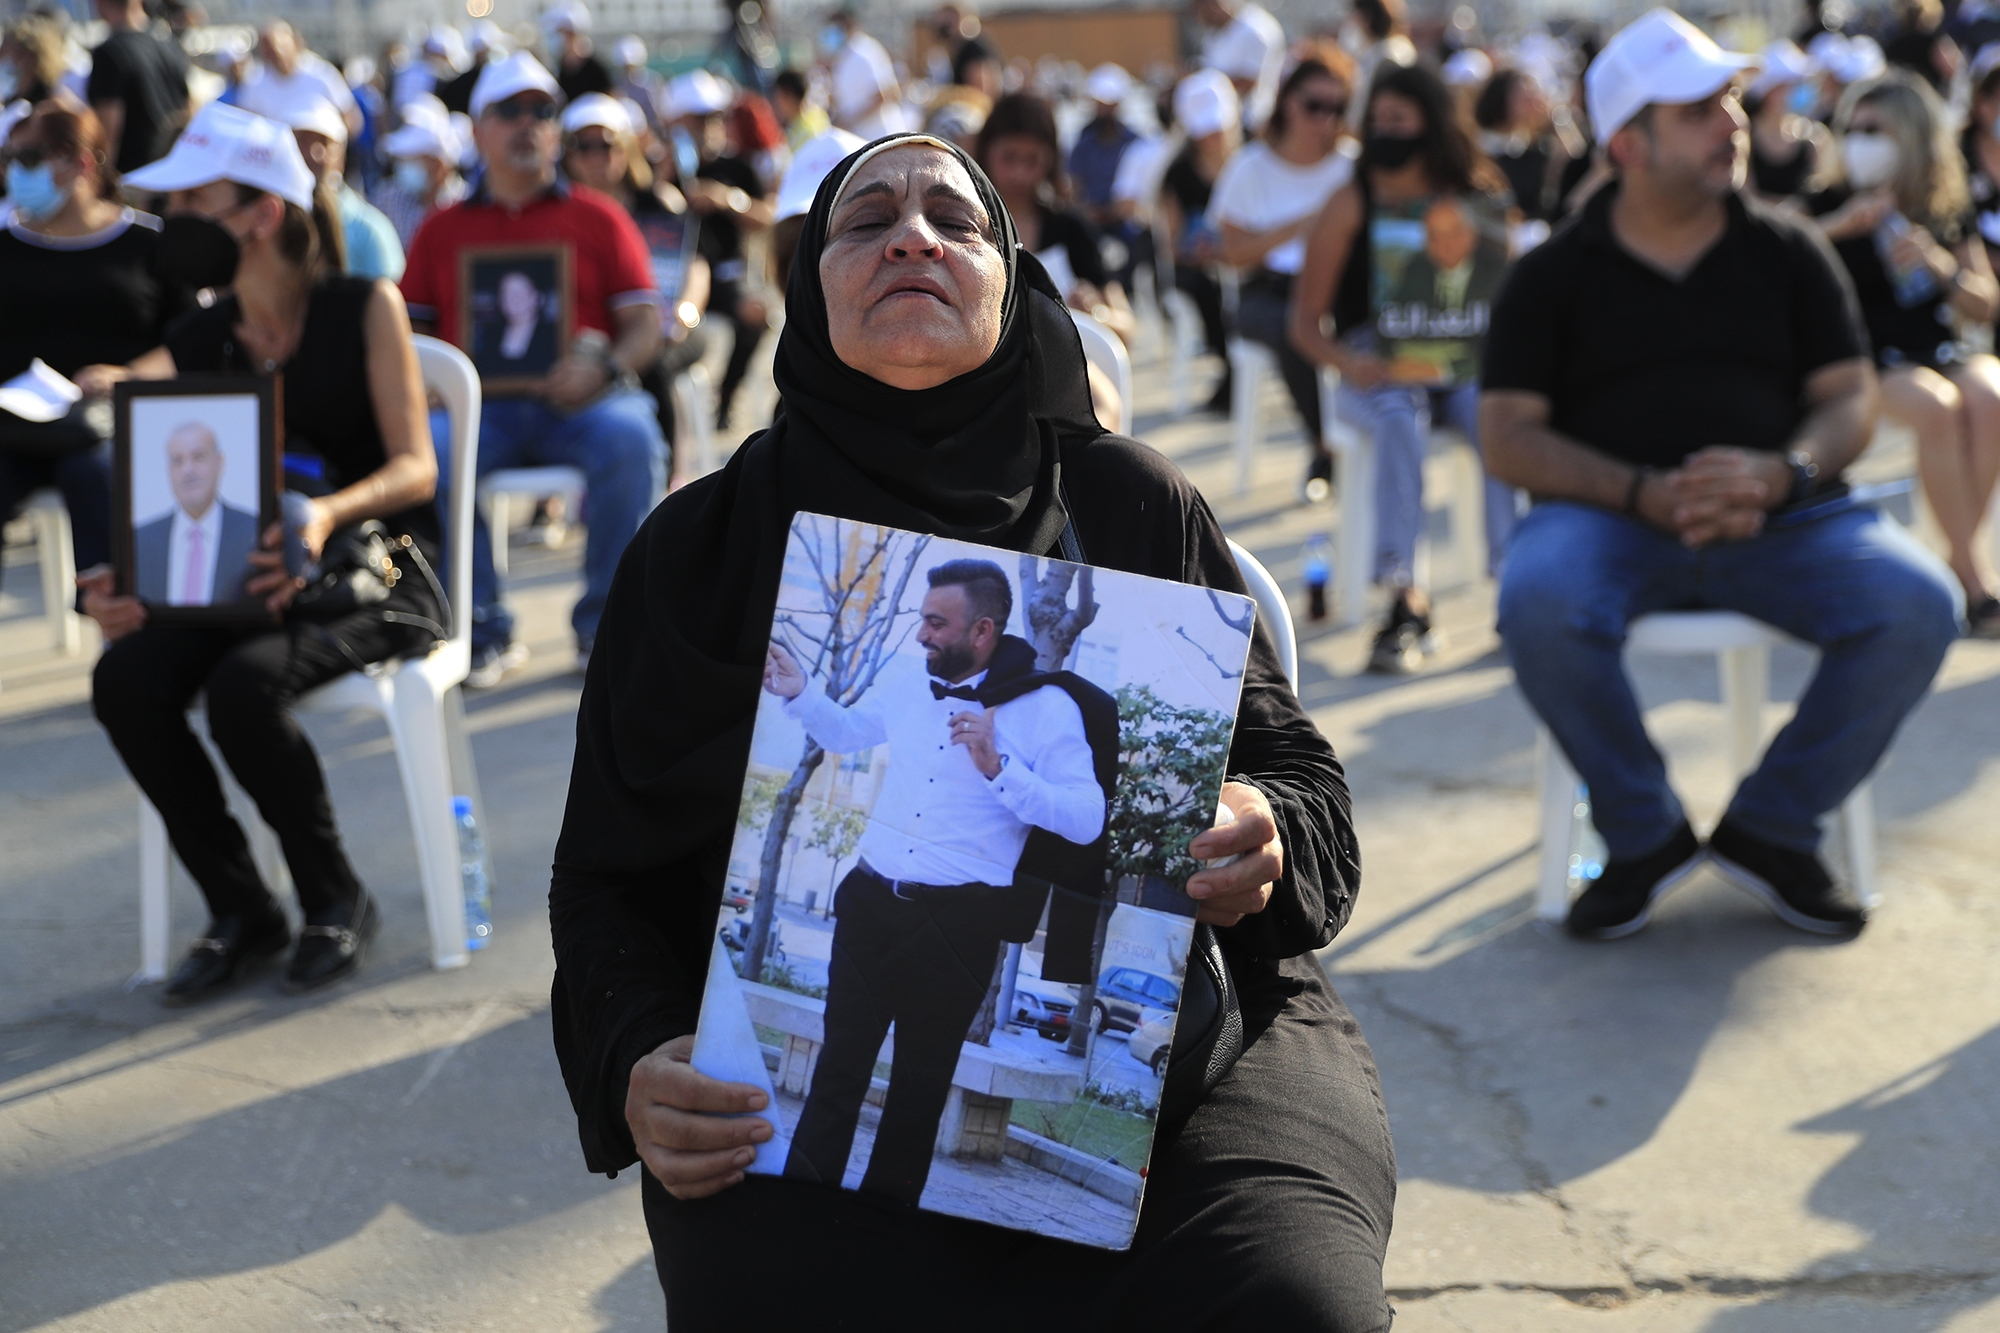 A memorial on Wednesday for the victims of an explosion in Beirut